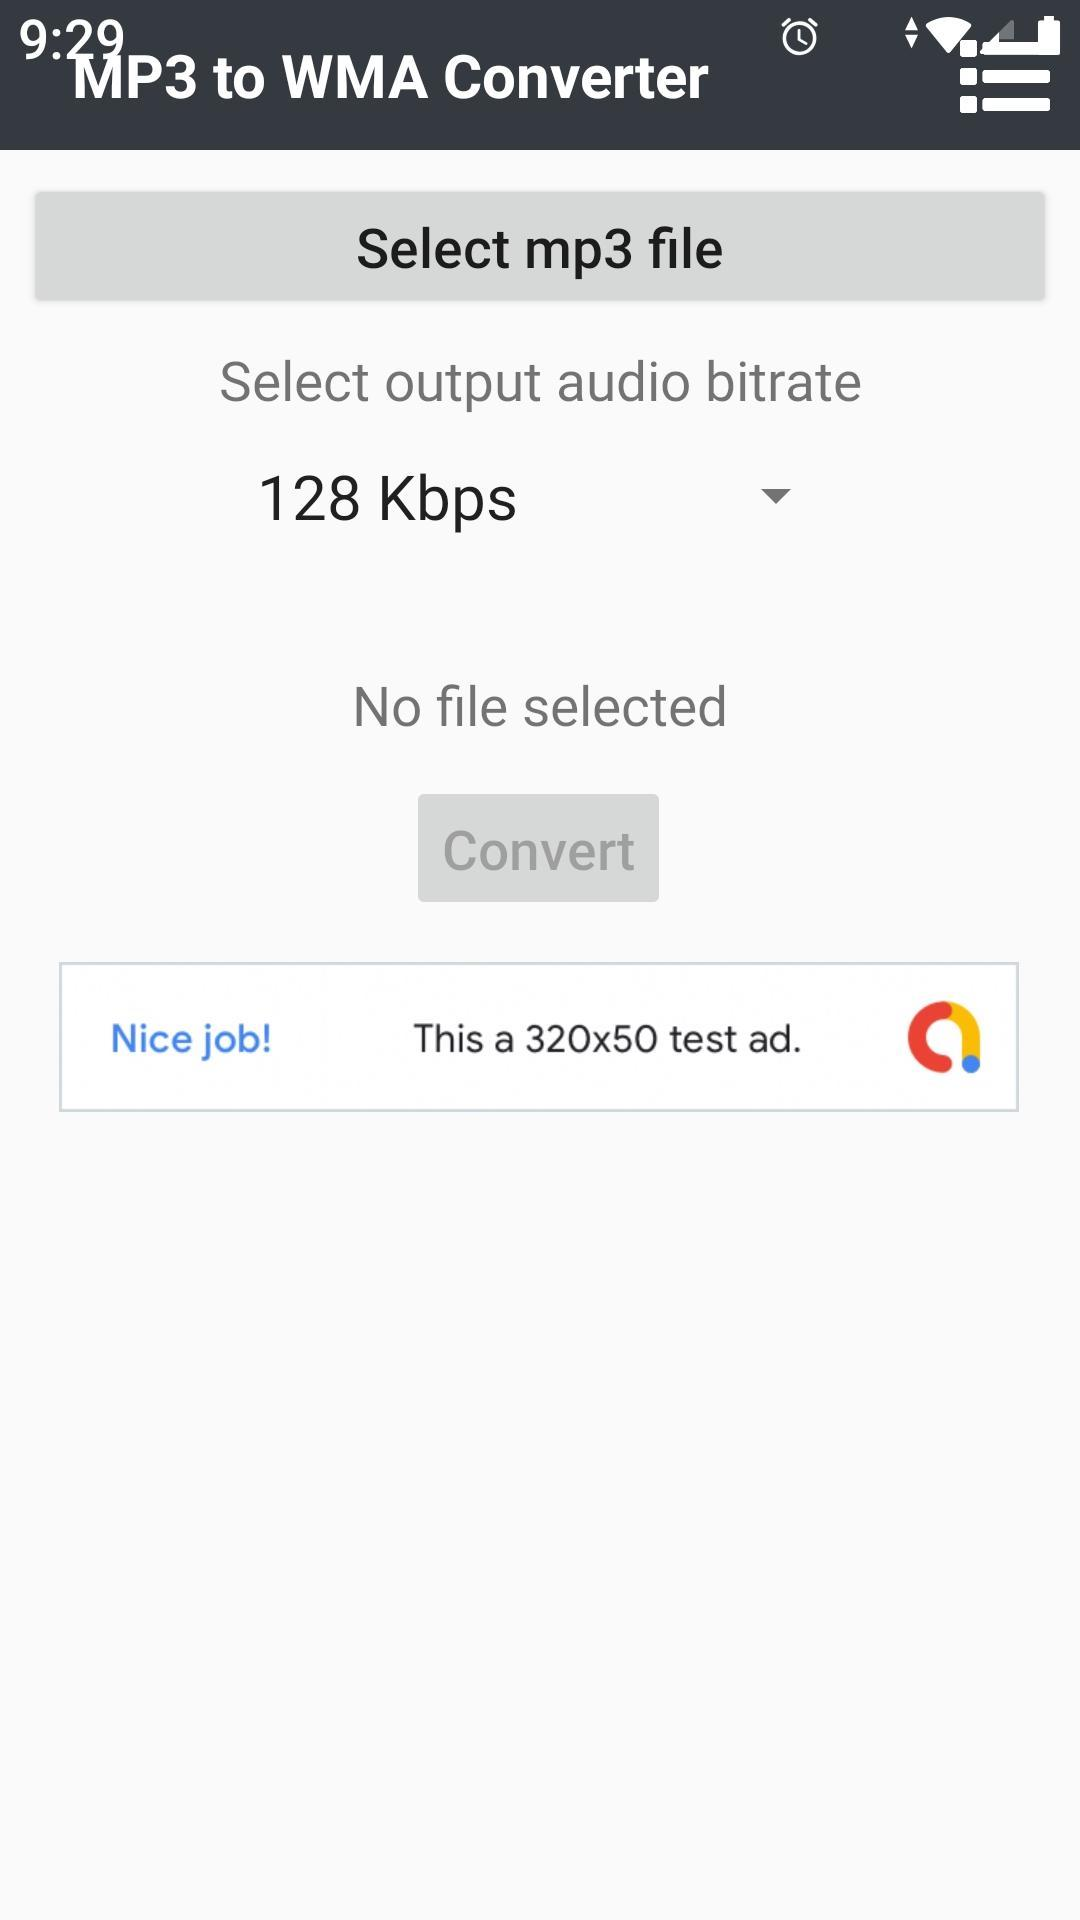 MP3 to WMA Converter for Android - APK Download